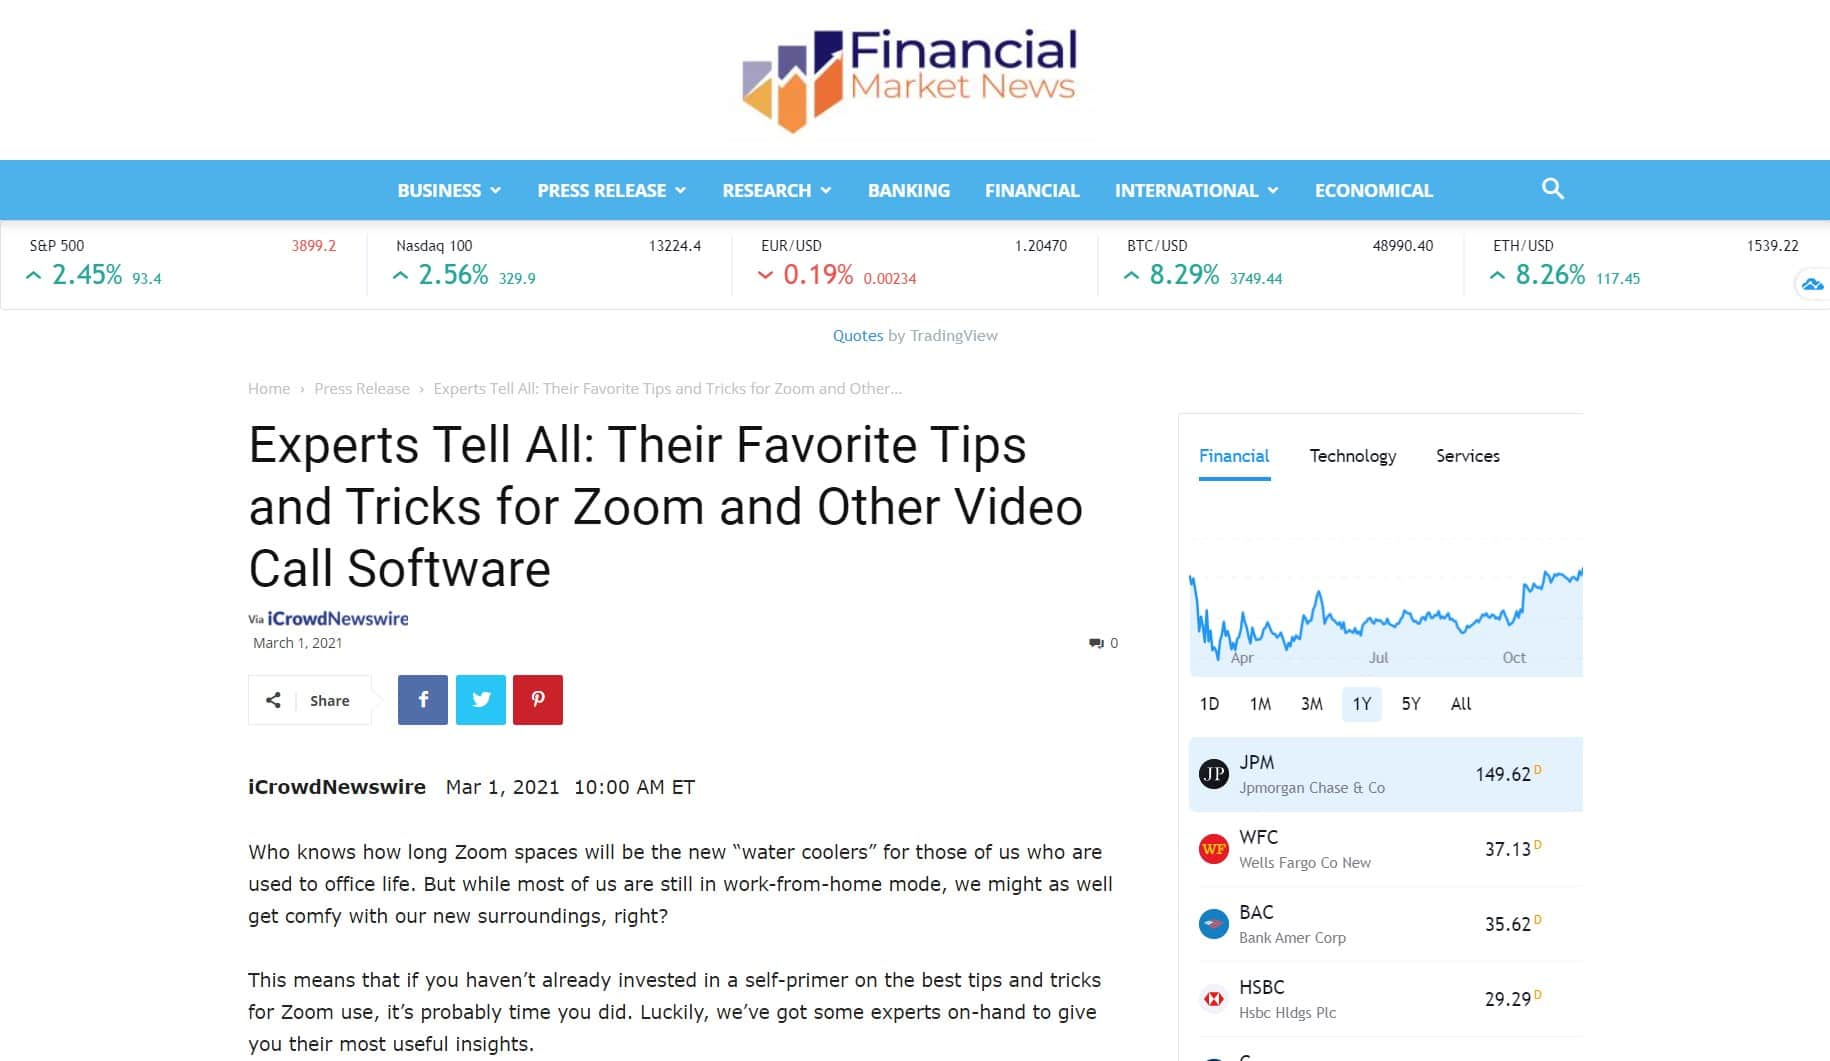 Experts Tell All: Their Favorite Tips and Tricks for Zoom and Other Video Call Software